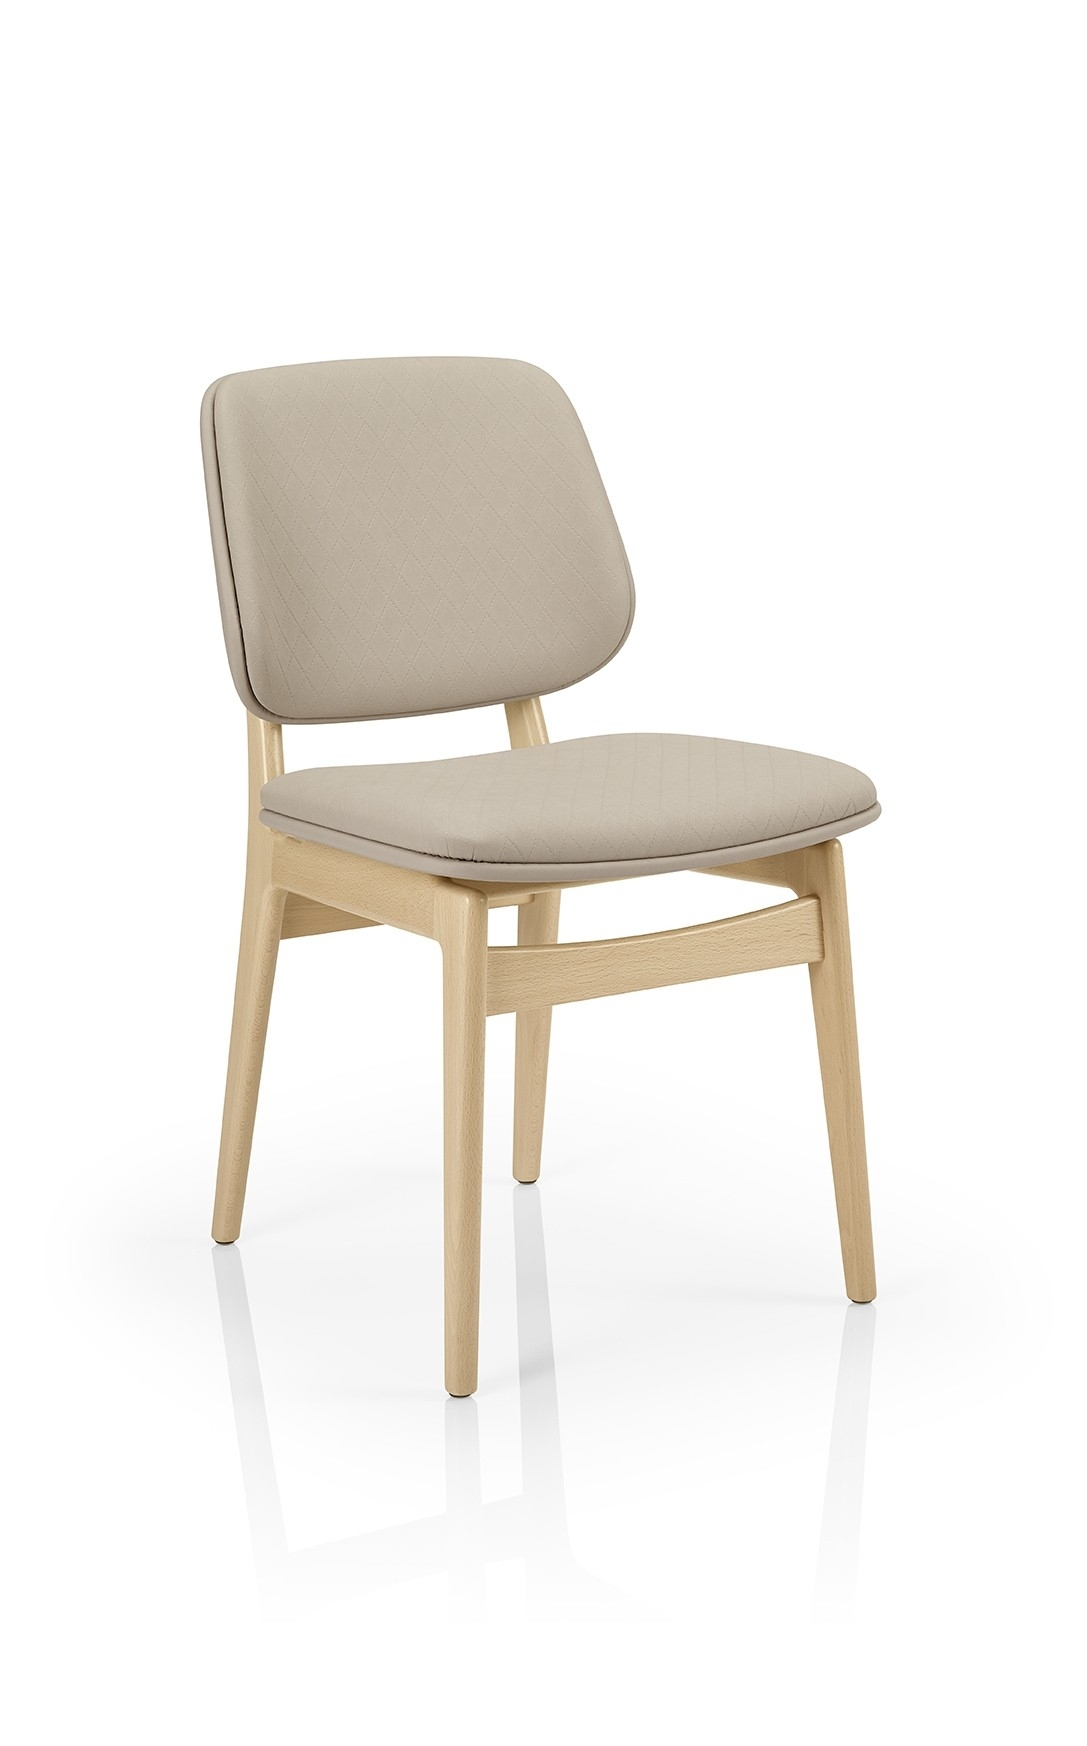 Widely Used Perla Chair M932 St With Regard To Perla Side Chairs (#20 of 20)